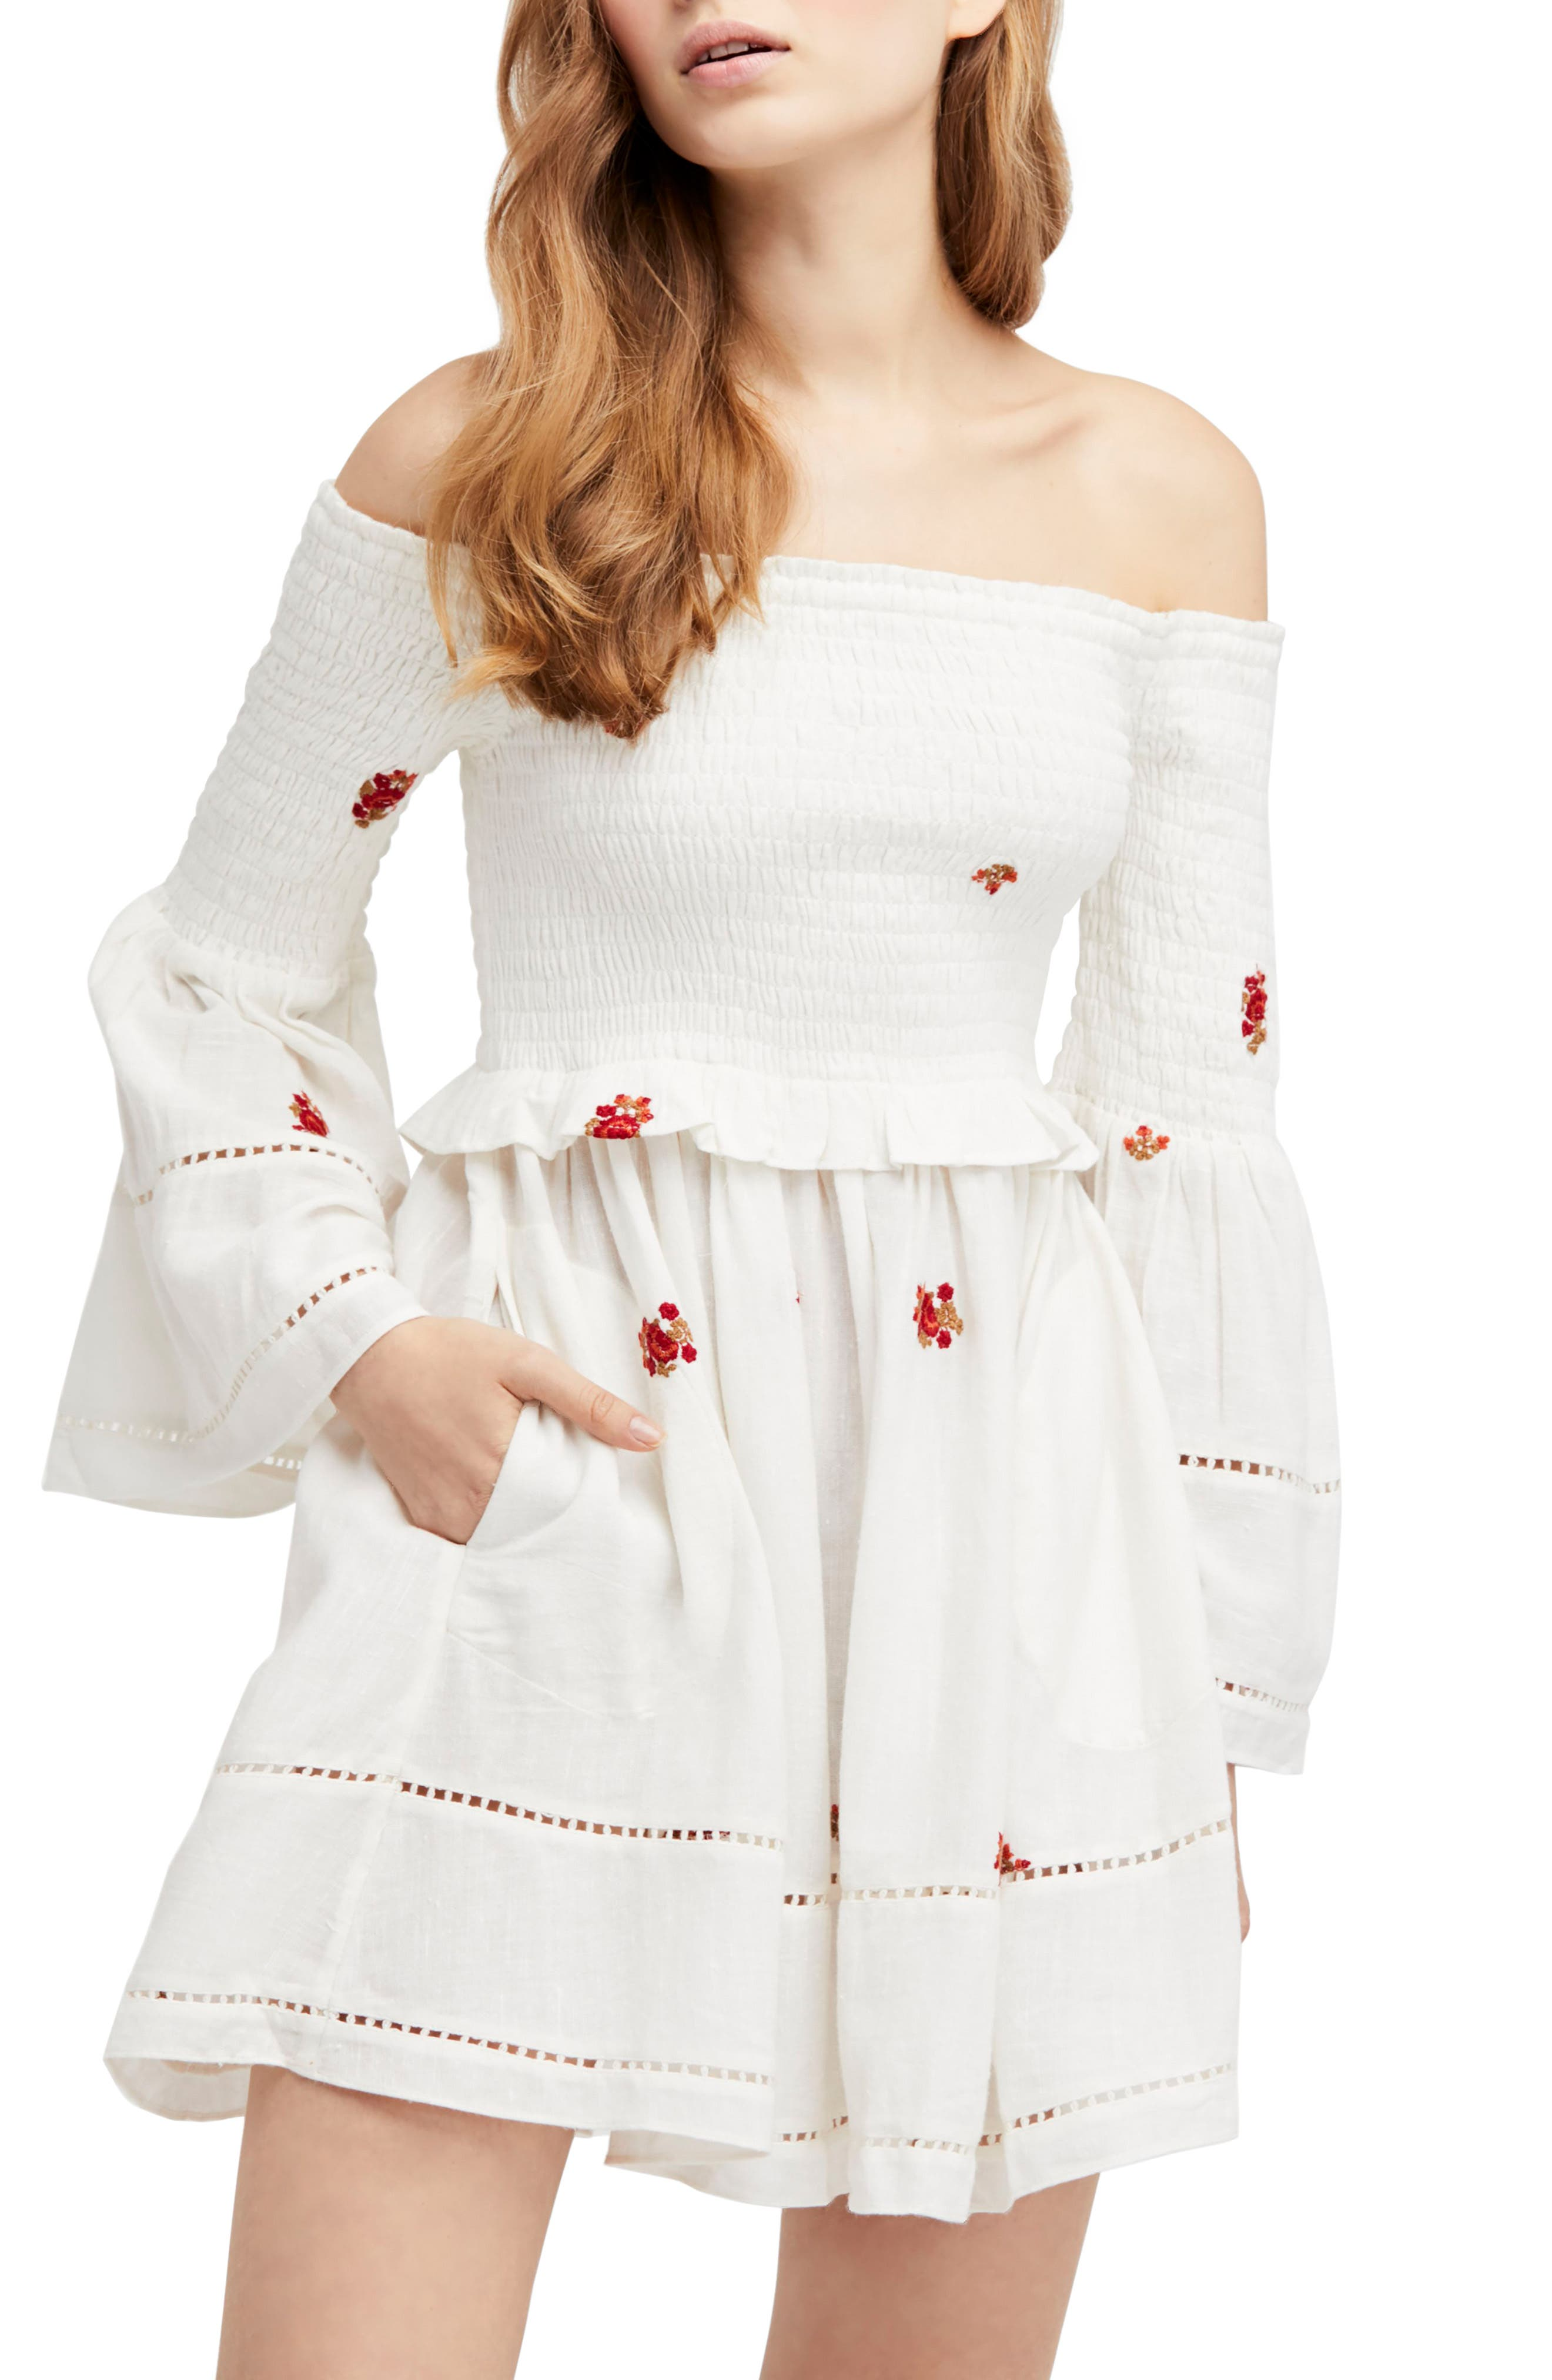 Counting Daisies Embroidered Off the Shoulder Dress,                             Main thumbnail 1, color,                             Ivory Combo